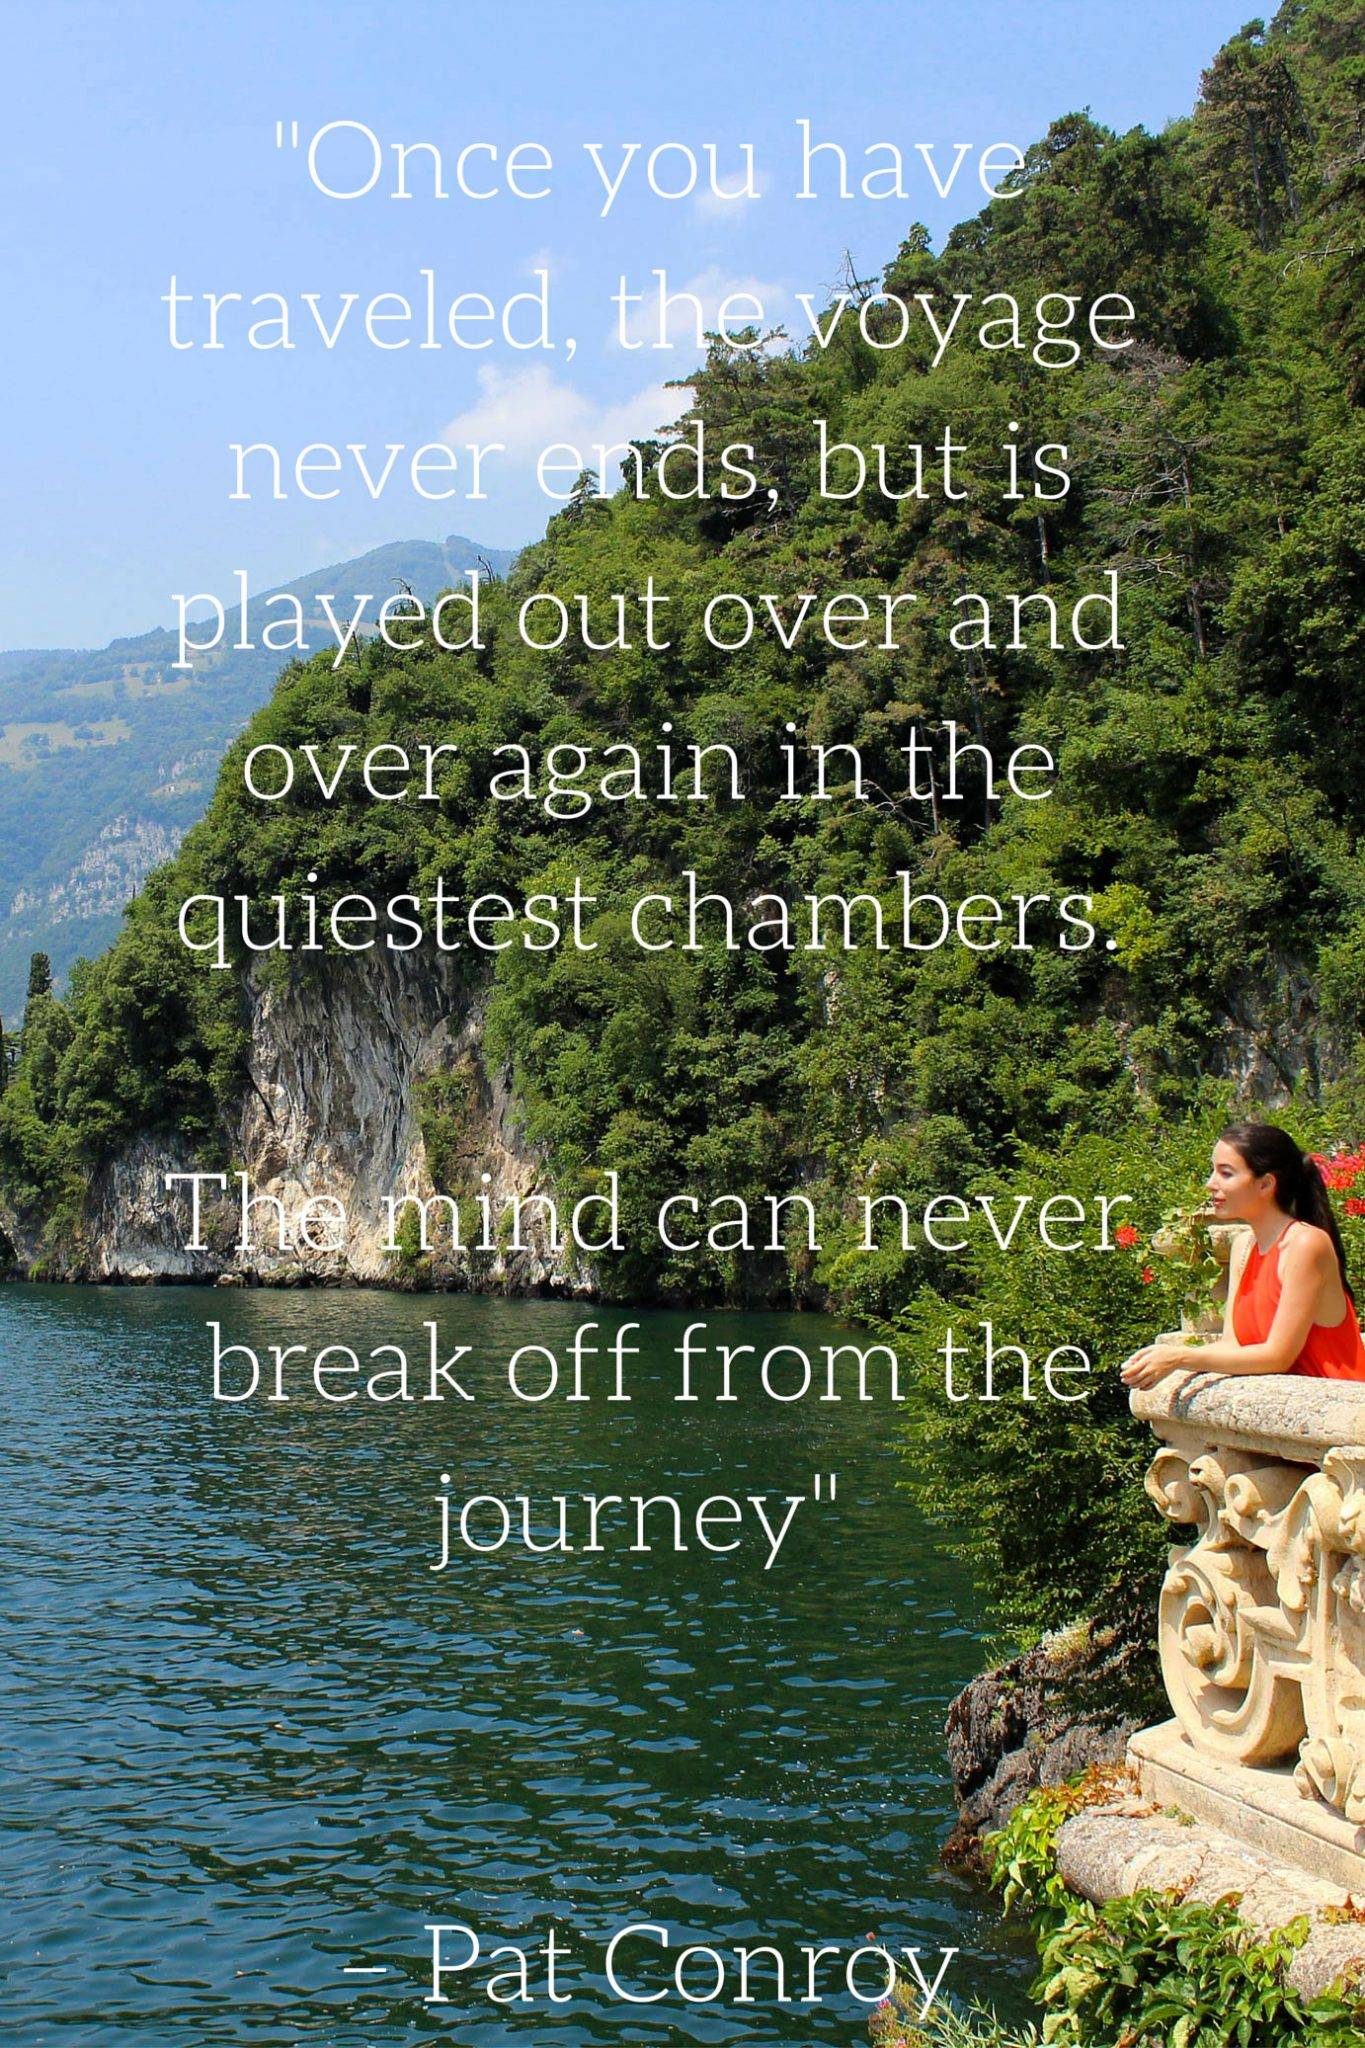 travel quotes inspiration inspired